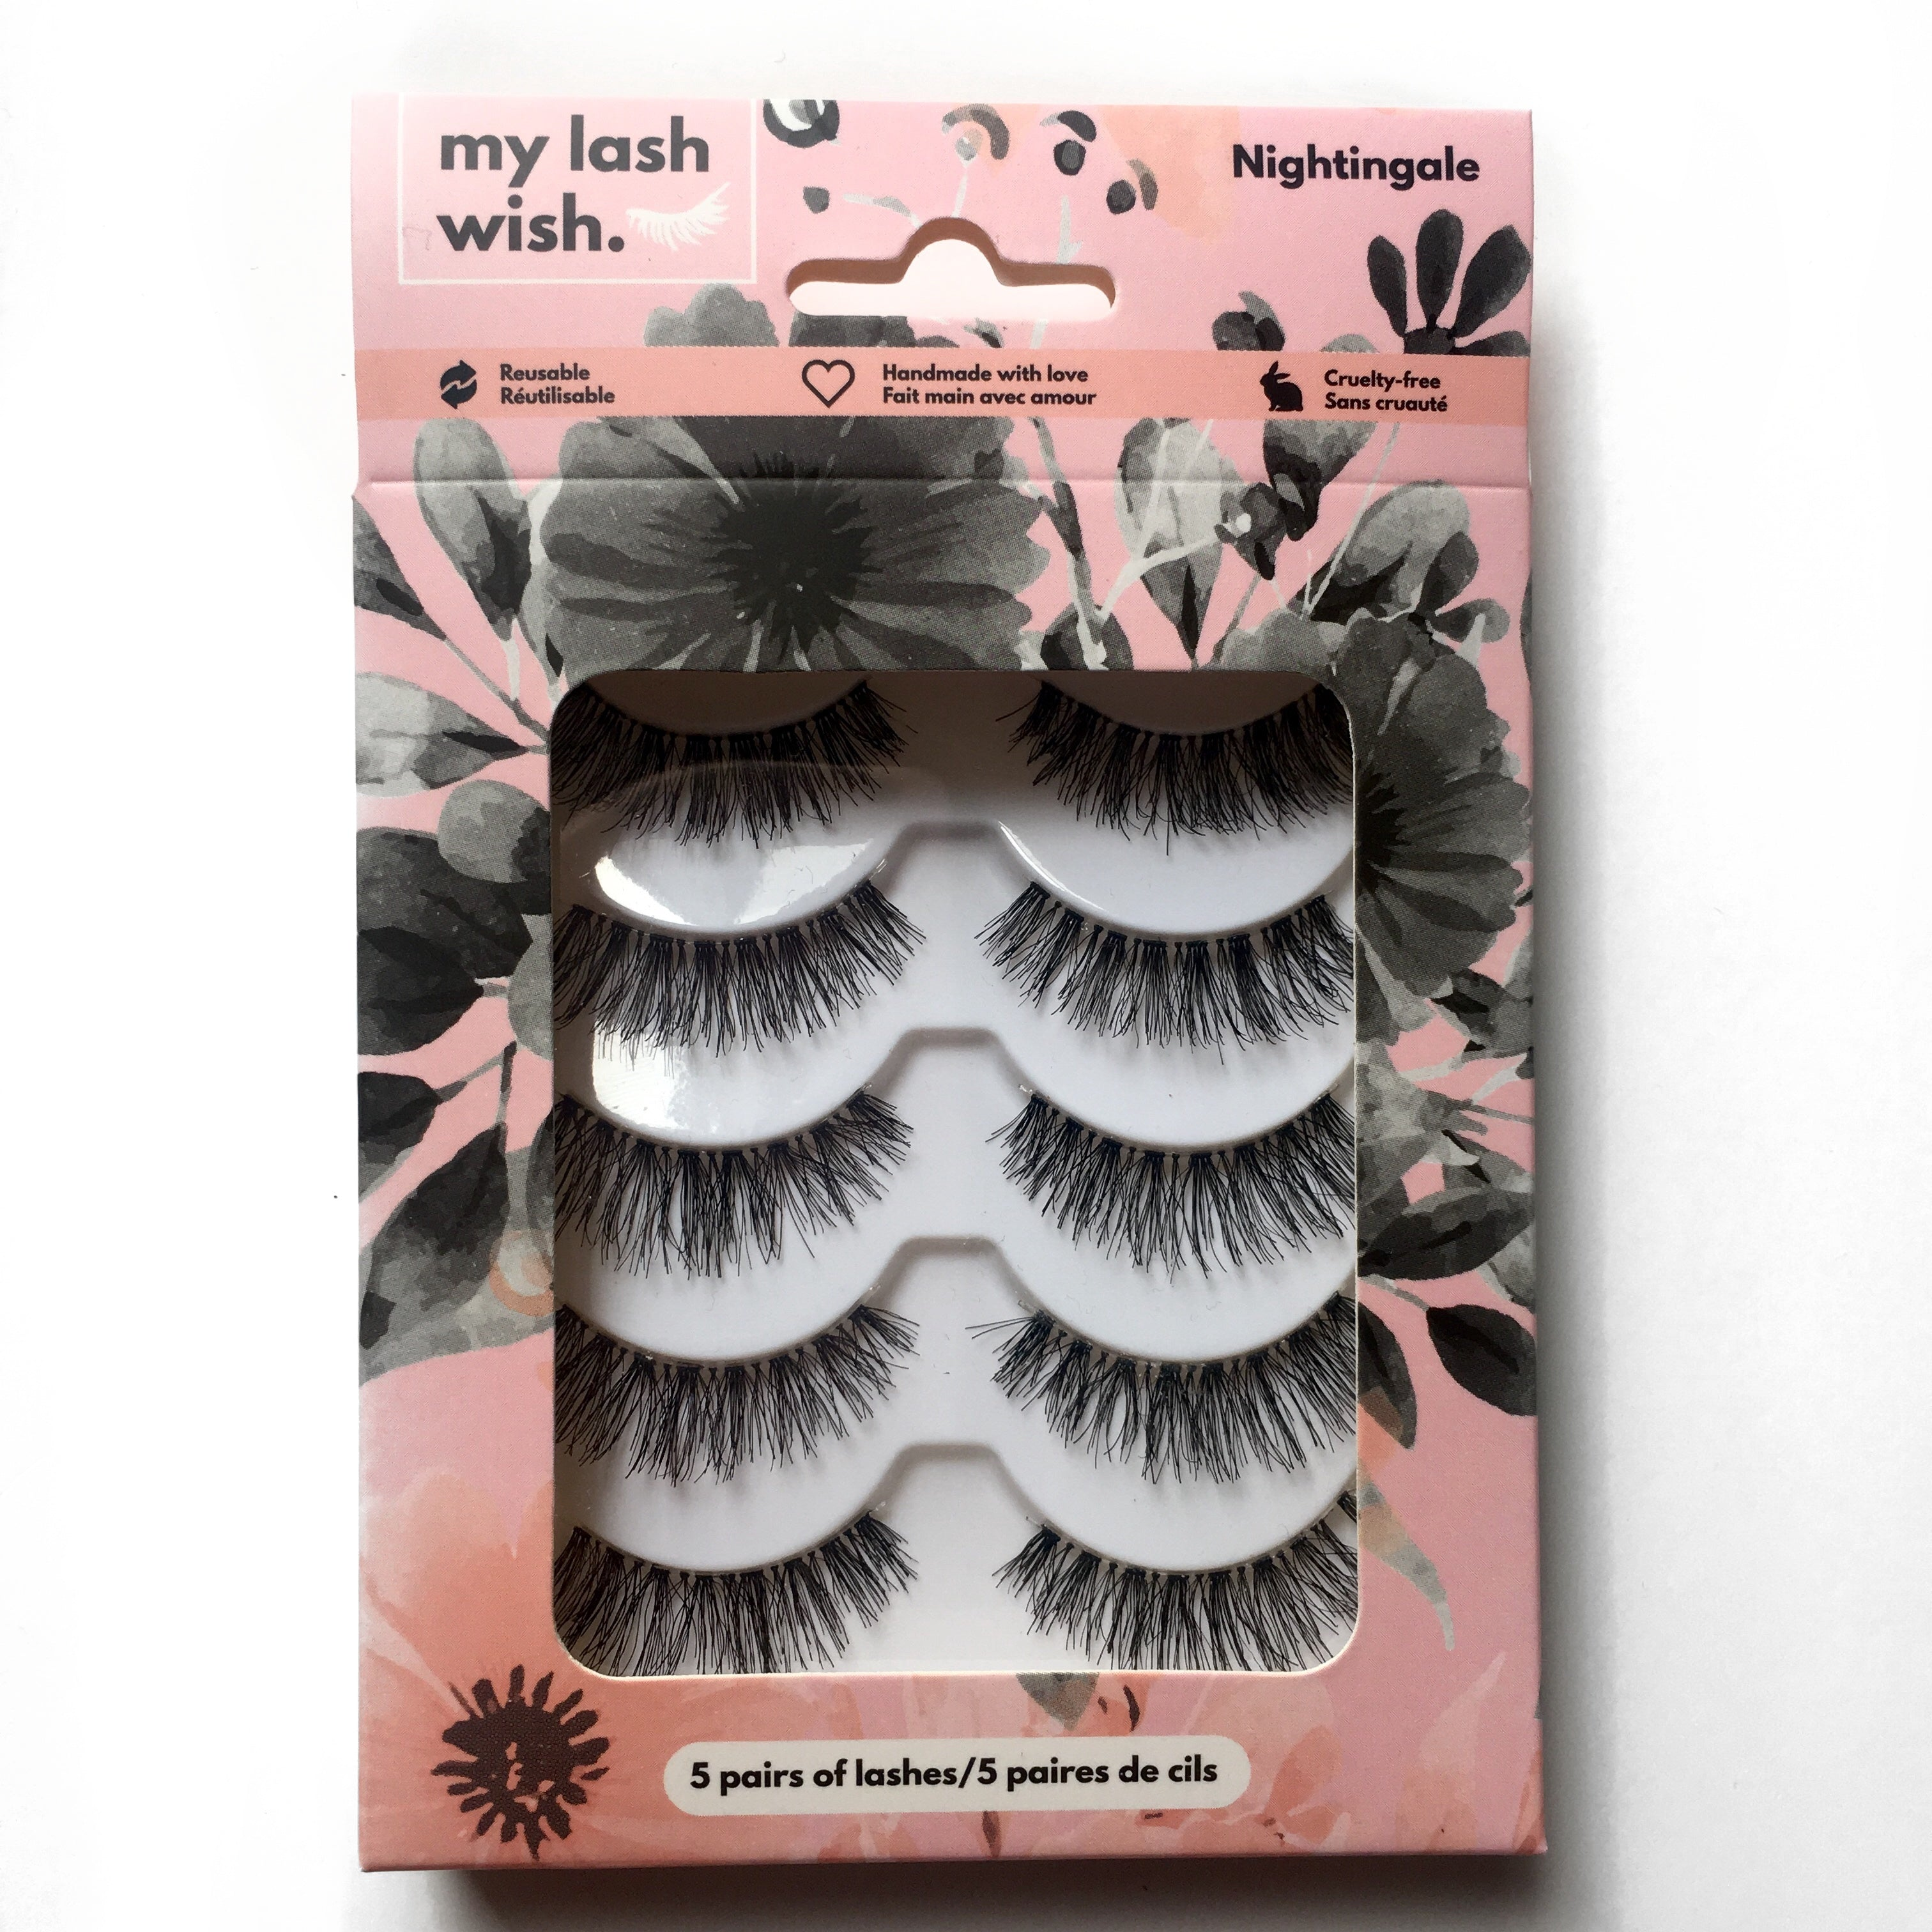 Nightingale - My Lash Wish